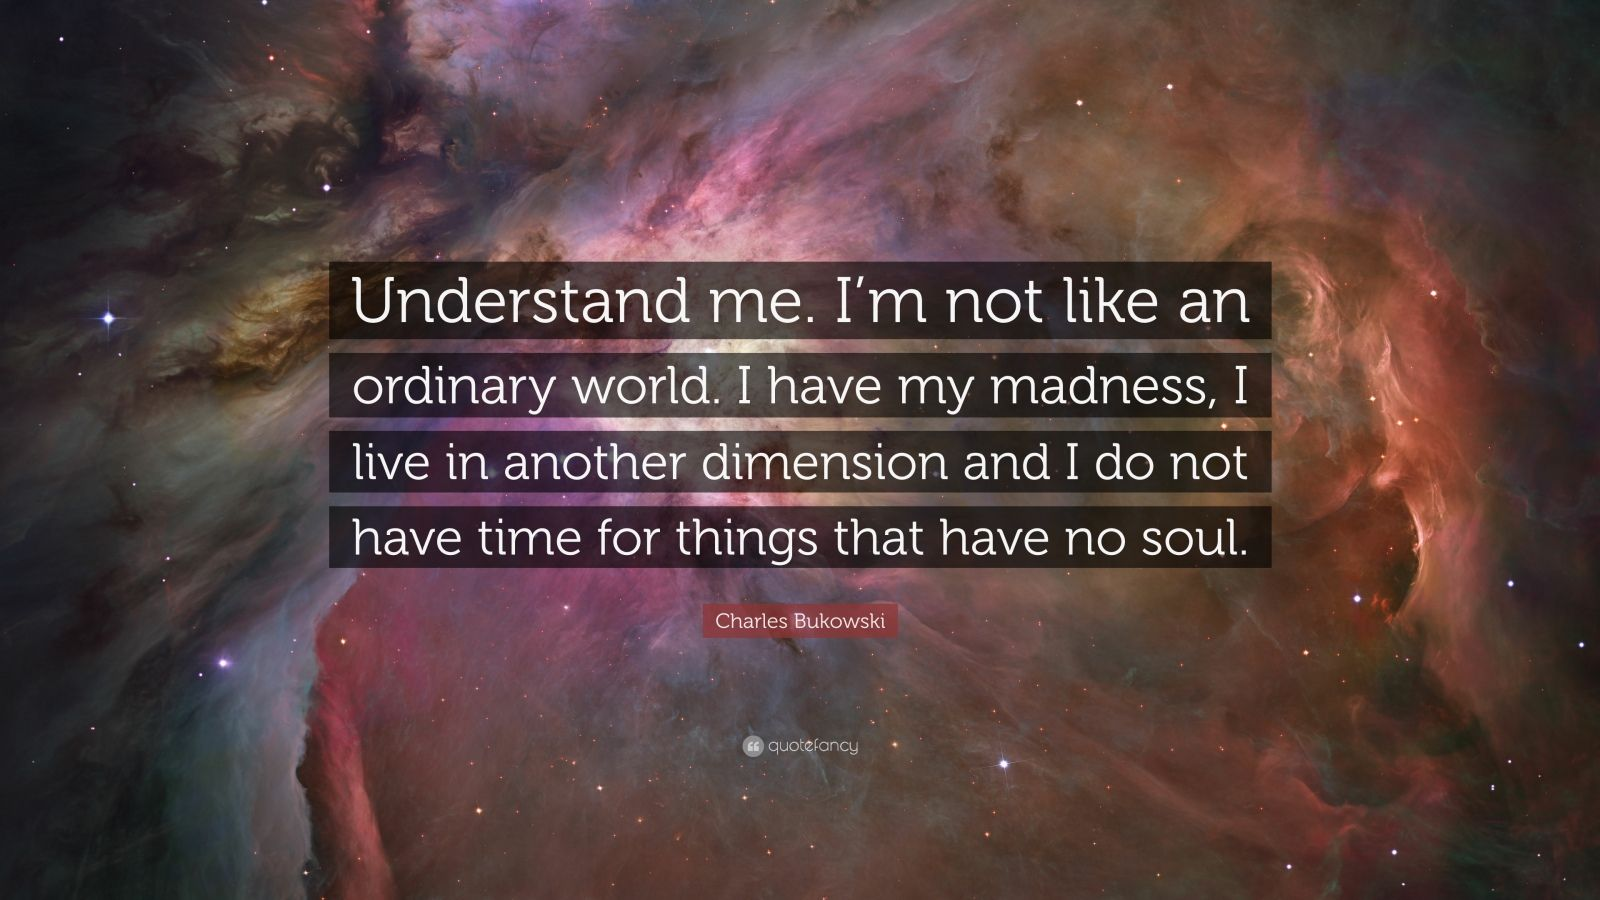 """Charles Bukowski Quote: """"Understand me. I'm not like an ordinary world. I have my madness, I live in another dimension and I do not have time for things that have no soul."""""""